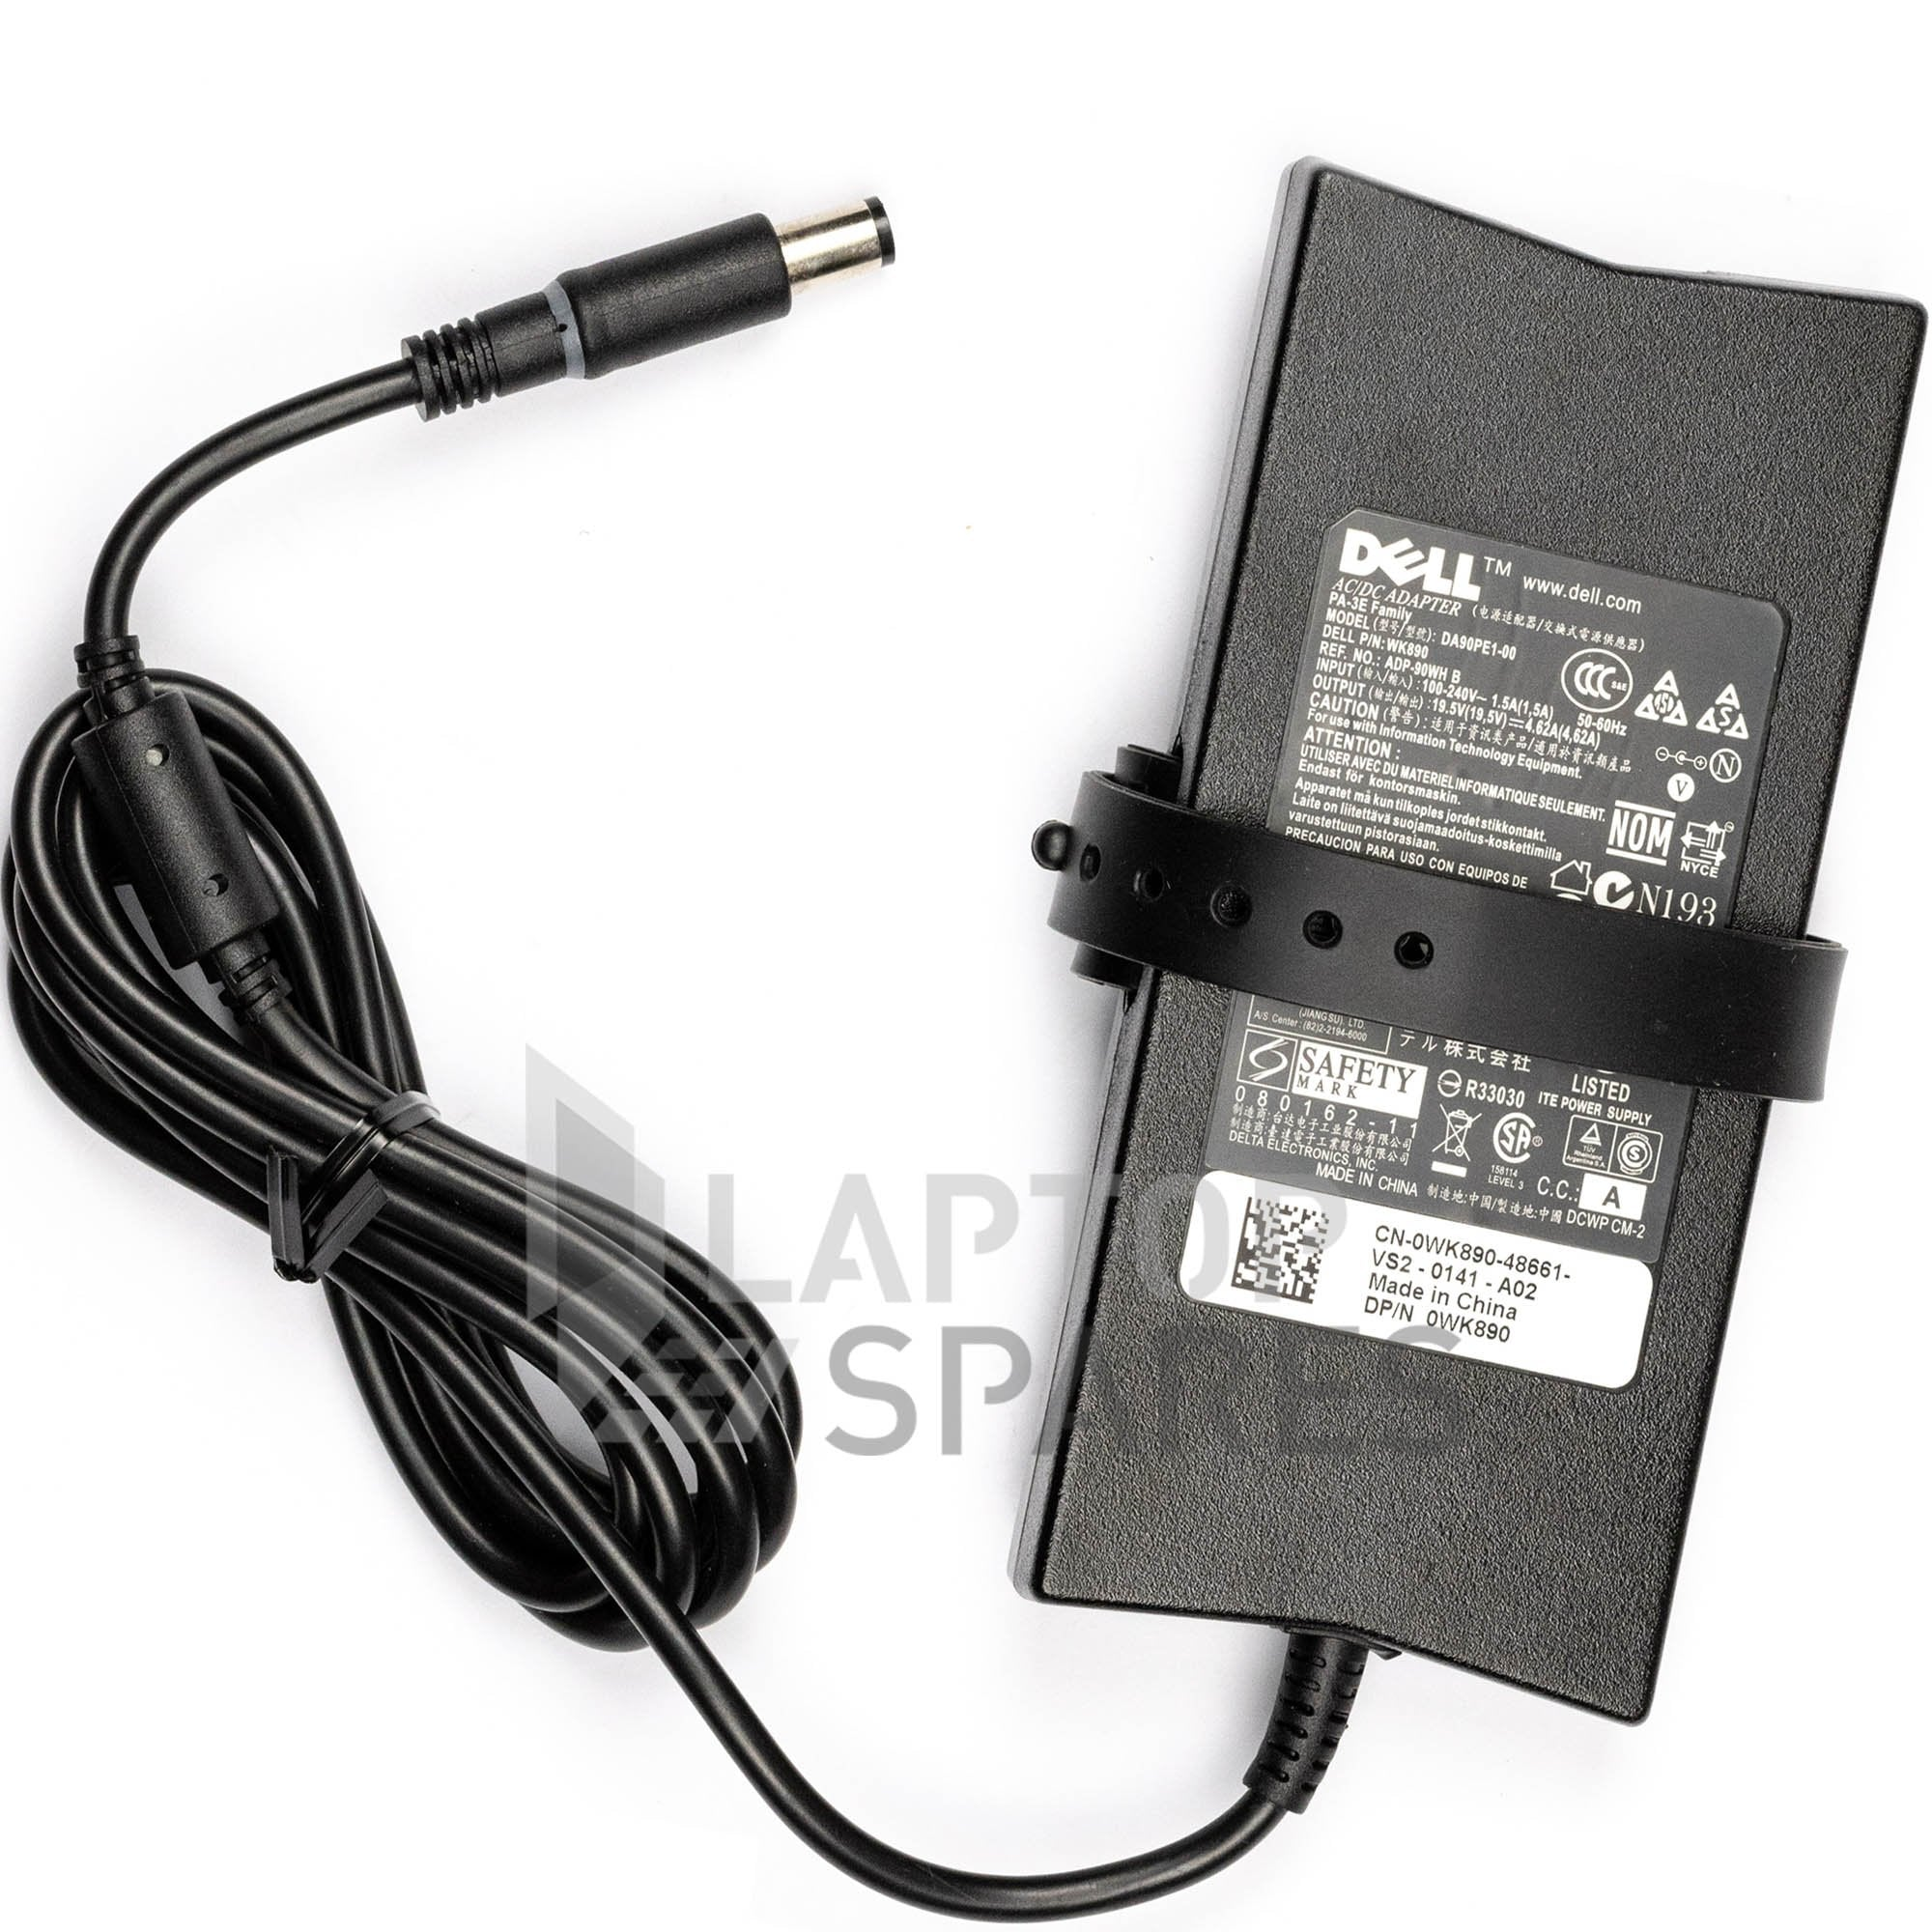 Dell Alienware M11x R2 Laptop Slim AC Adapter Charger